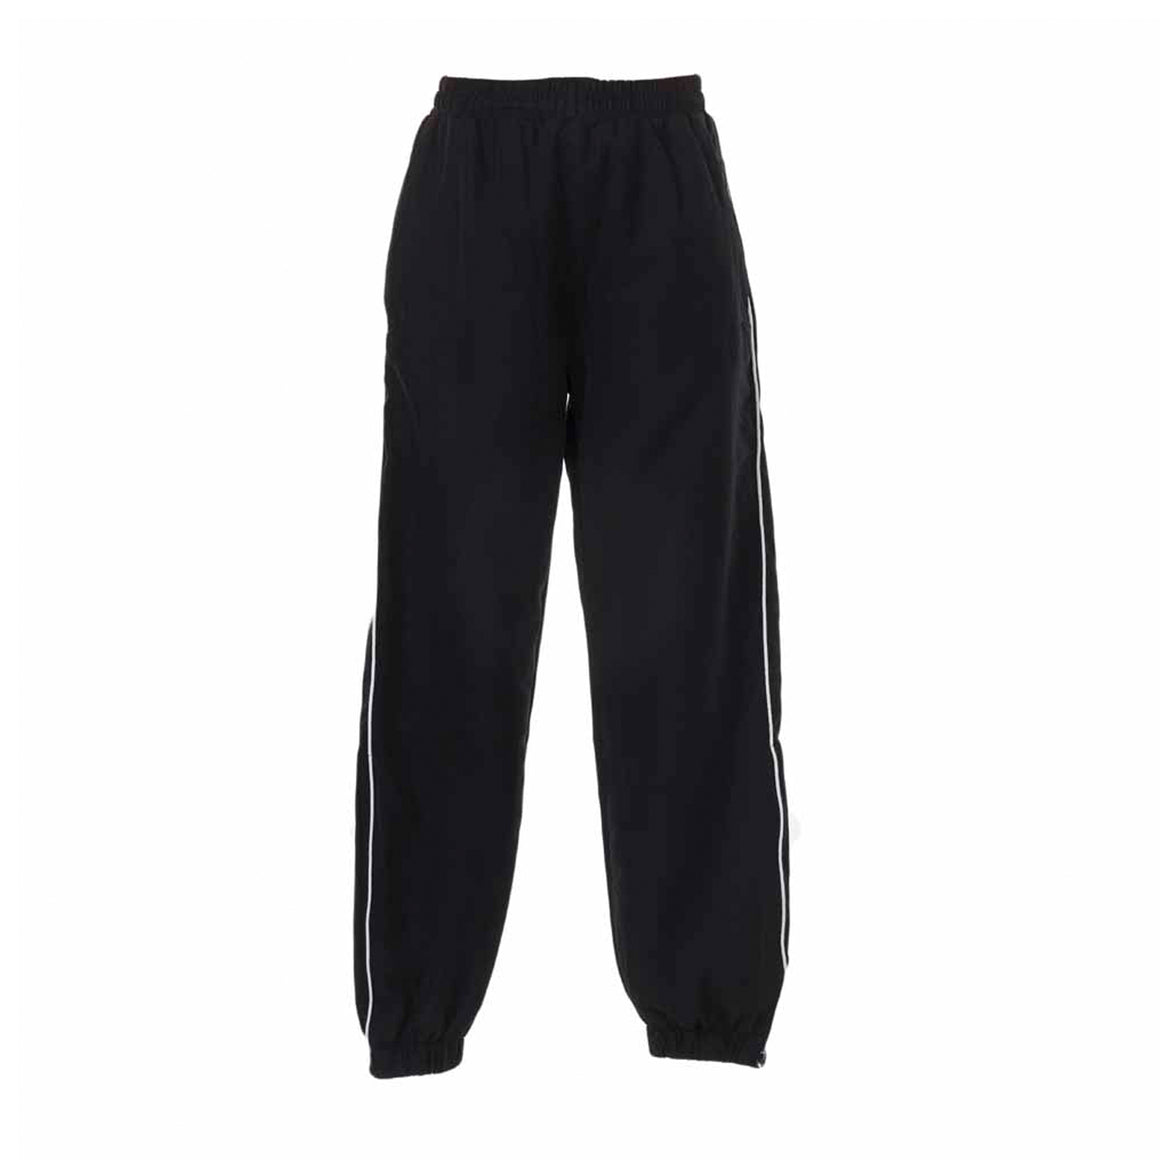 Tracksuit Trouser - Cuffed for Kids in Black White